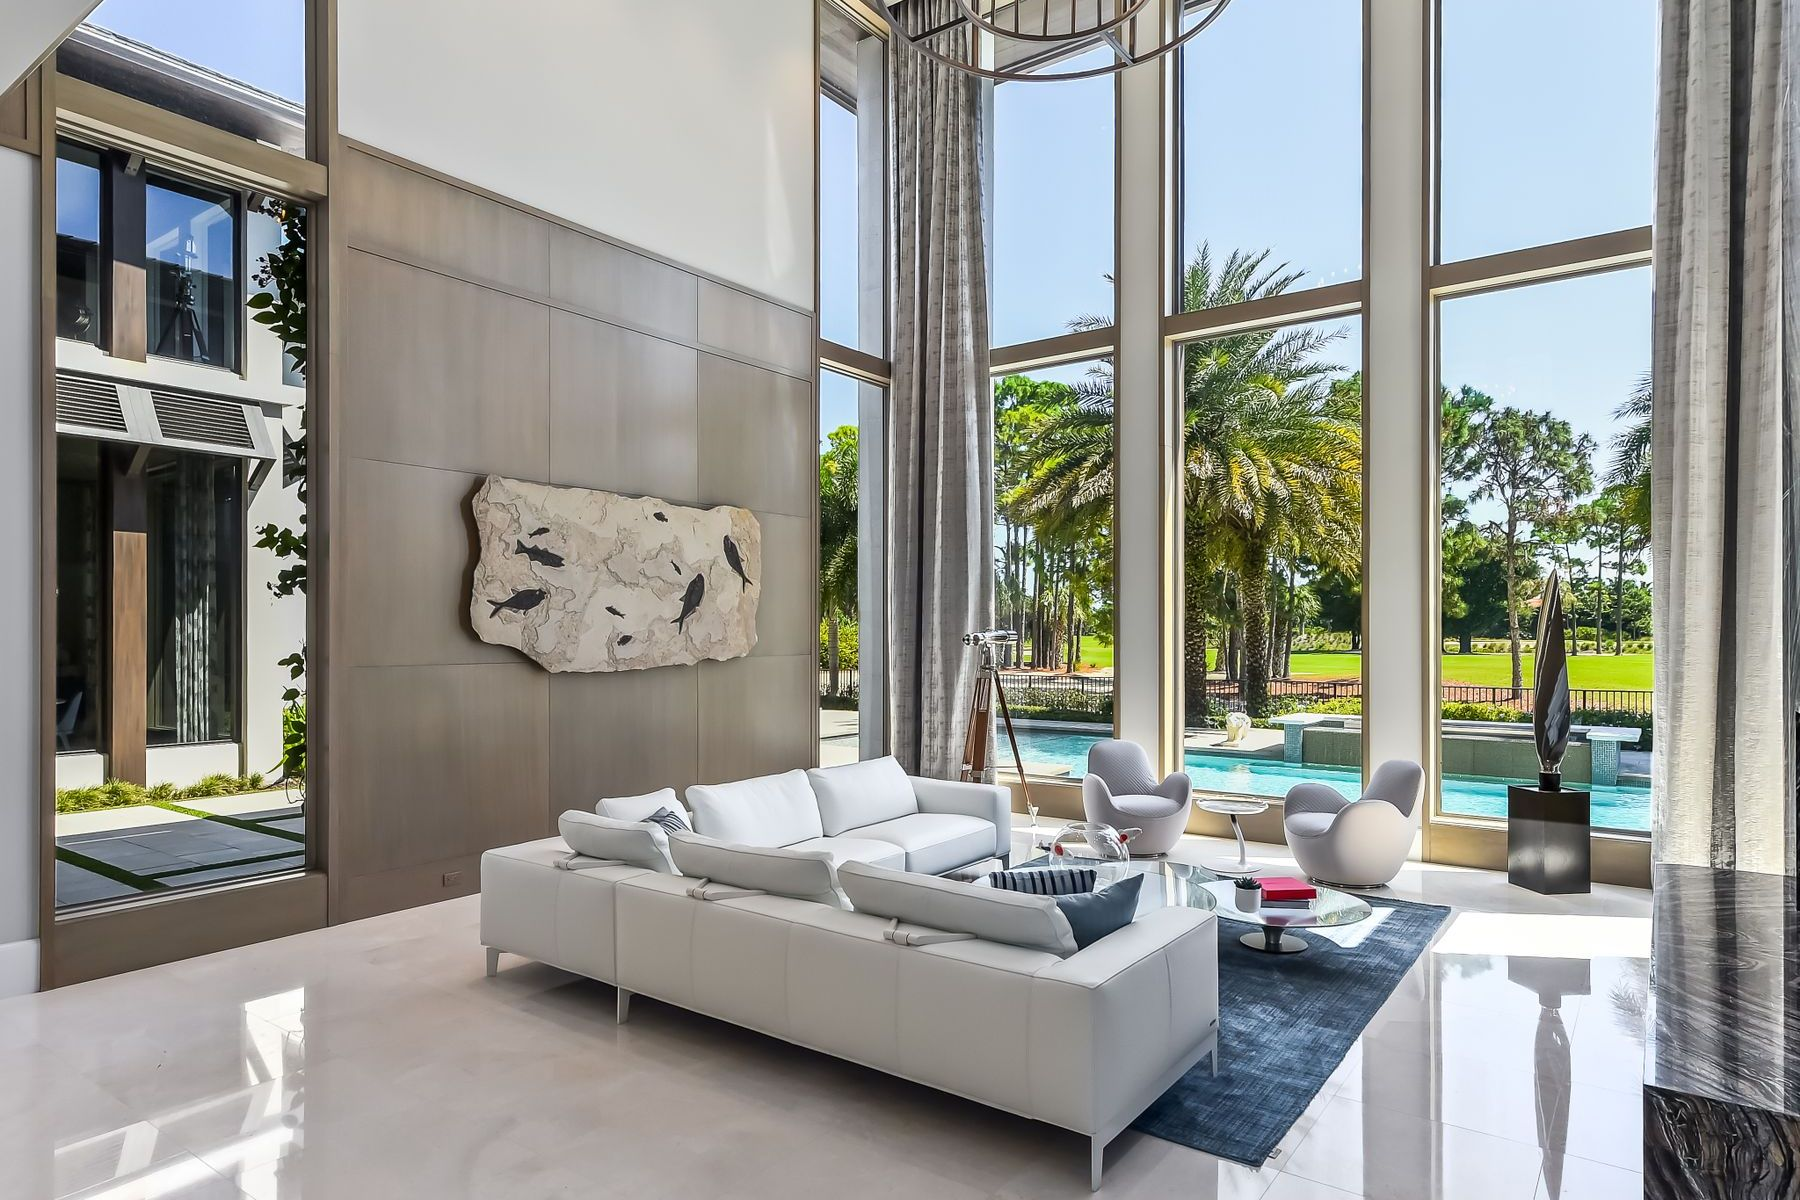 Single Family Homes for Sale at Exquisite Contemporary 11749 Bella Donna Court, Palm Beach Gardens, Florida 33418 United States